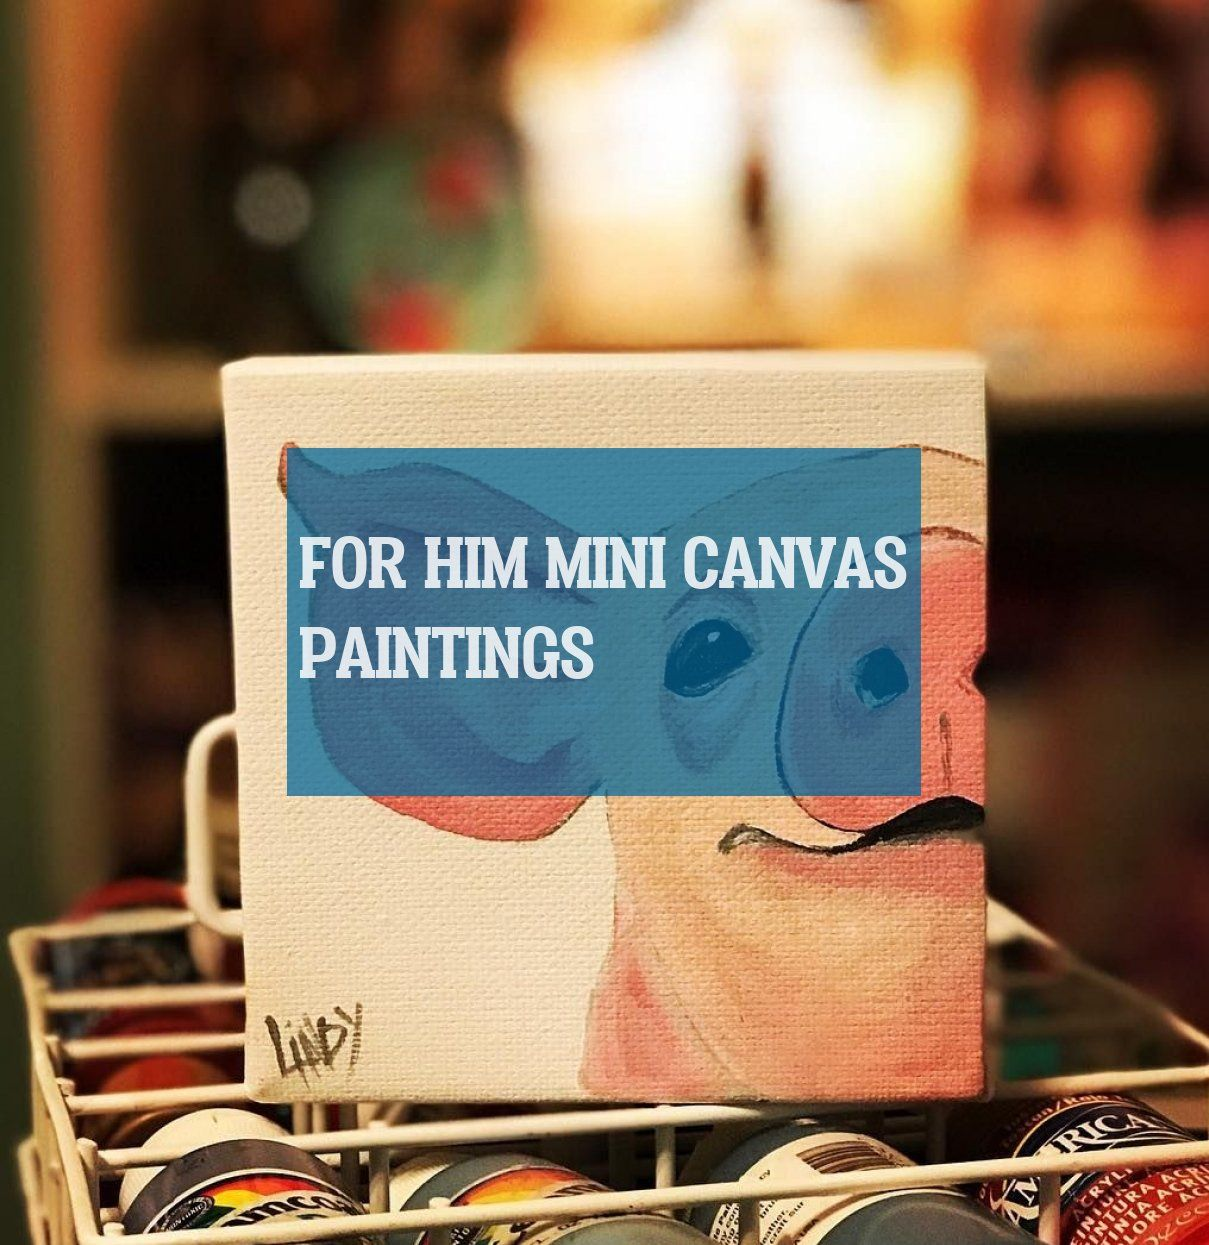 For Him mini canvas paintings